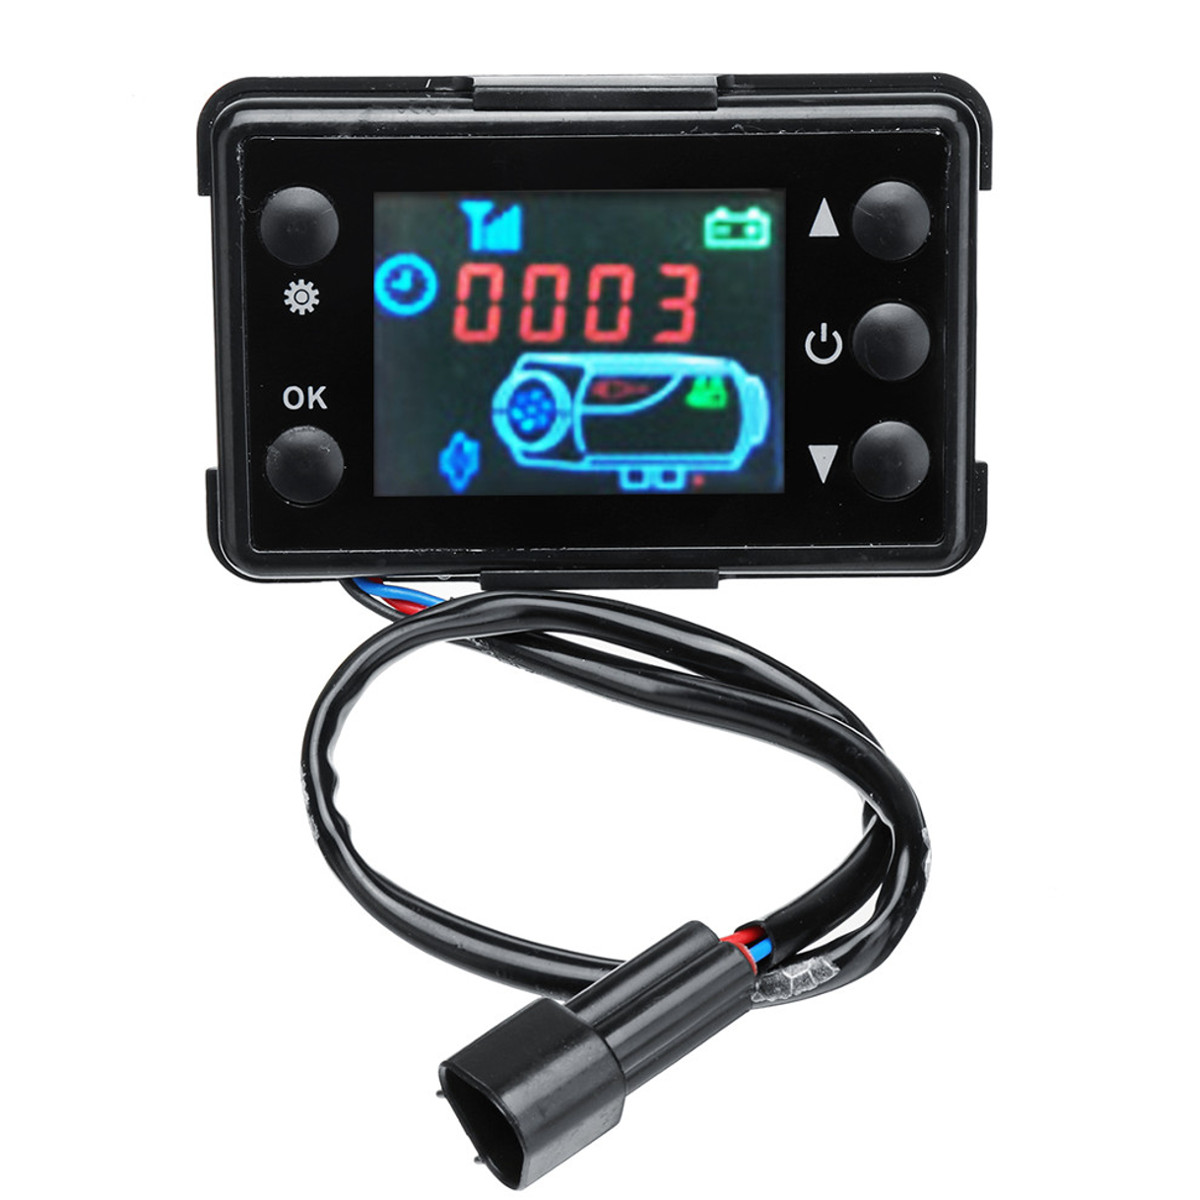 Atv,rv,boat & Other Vehicle 12v/24v 3/5kw Lcd Monitor Parking Heater Switch Car Heating Device Controller Universal For Car Track Air Heater